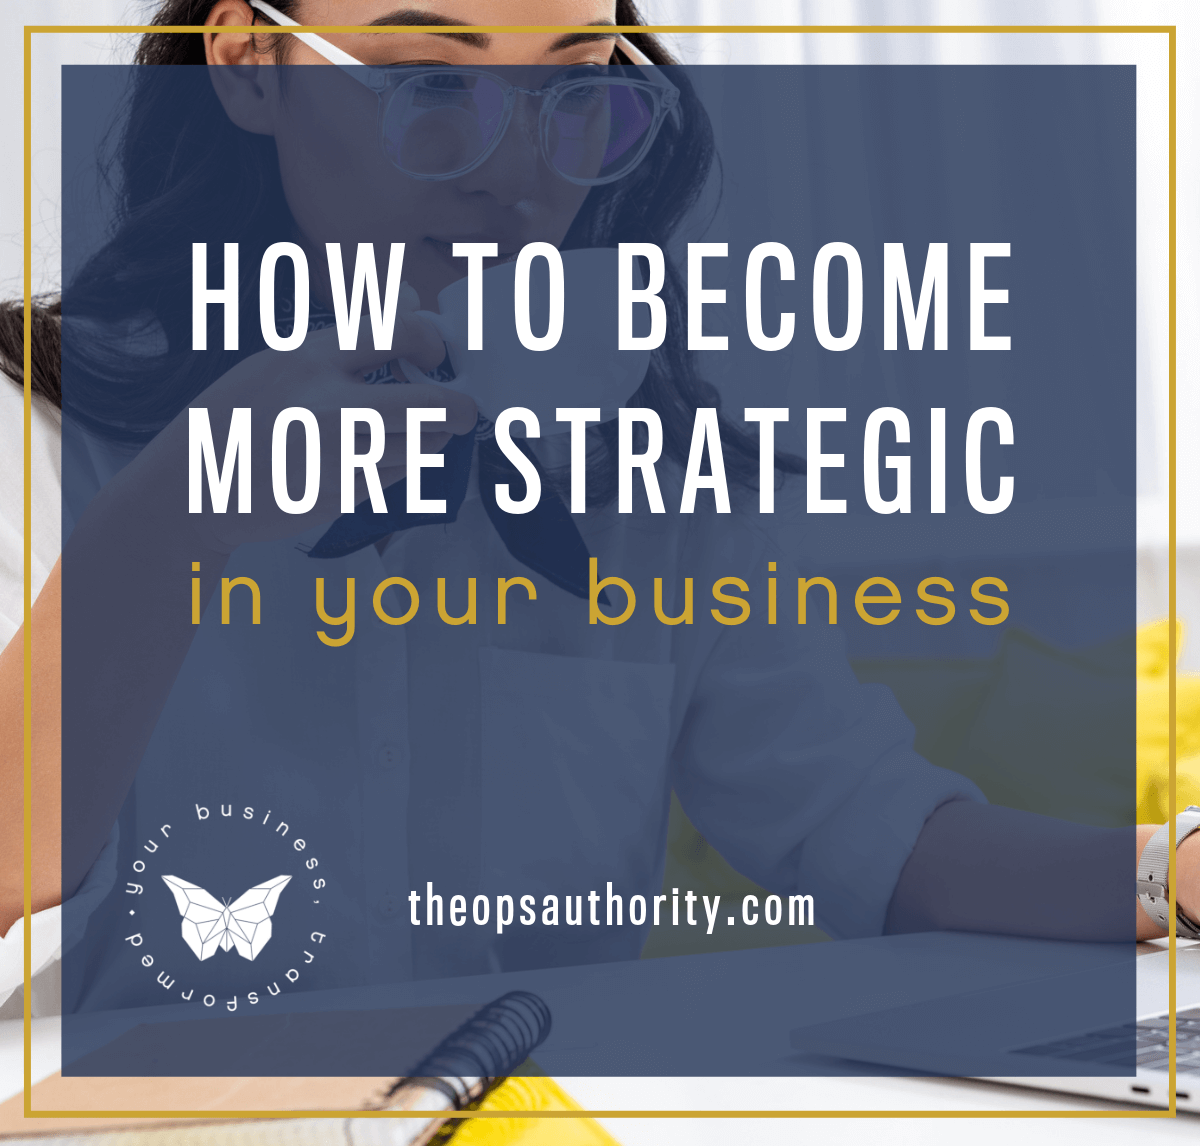 How To Become More Strategic